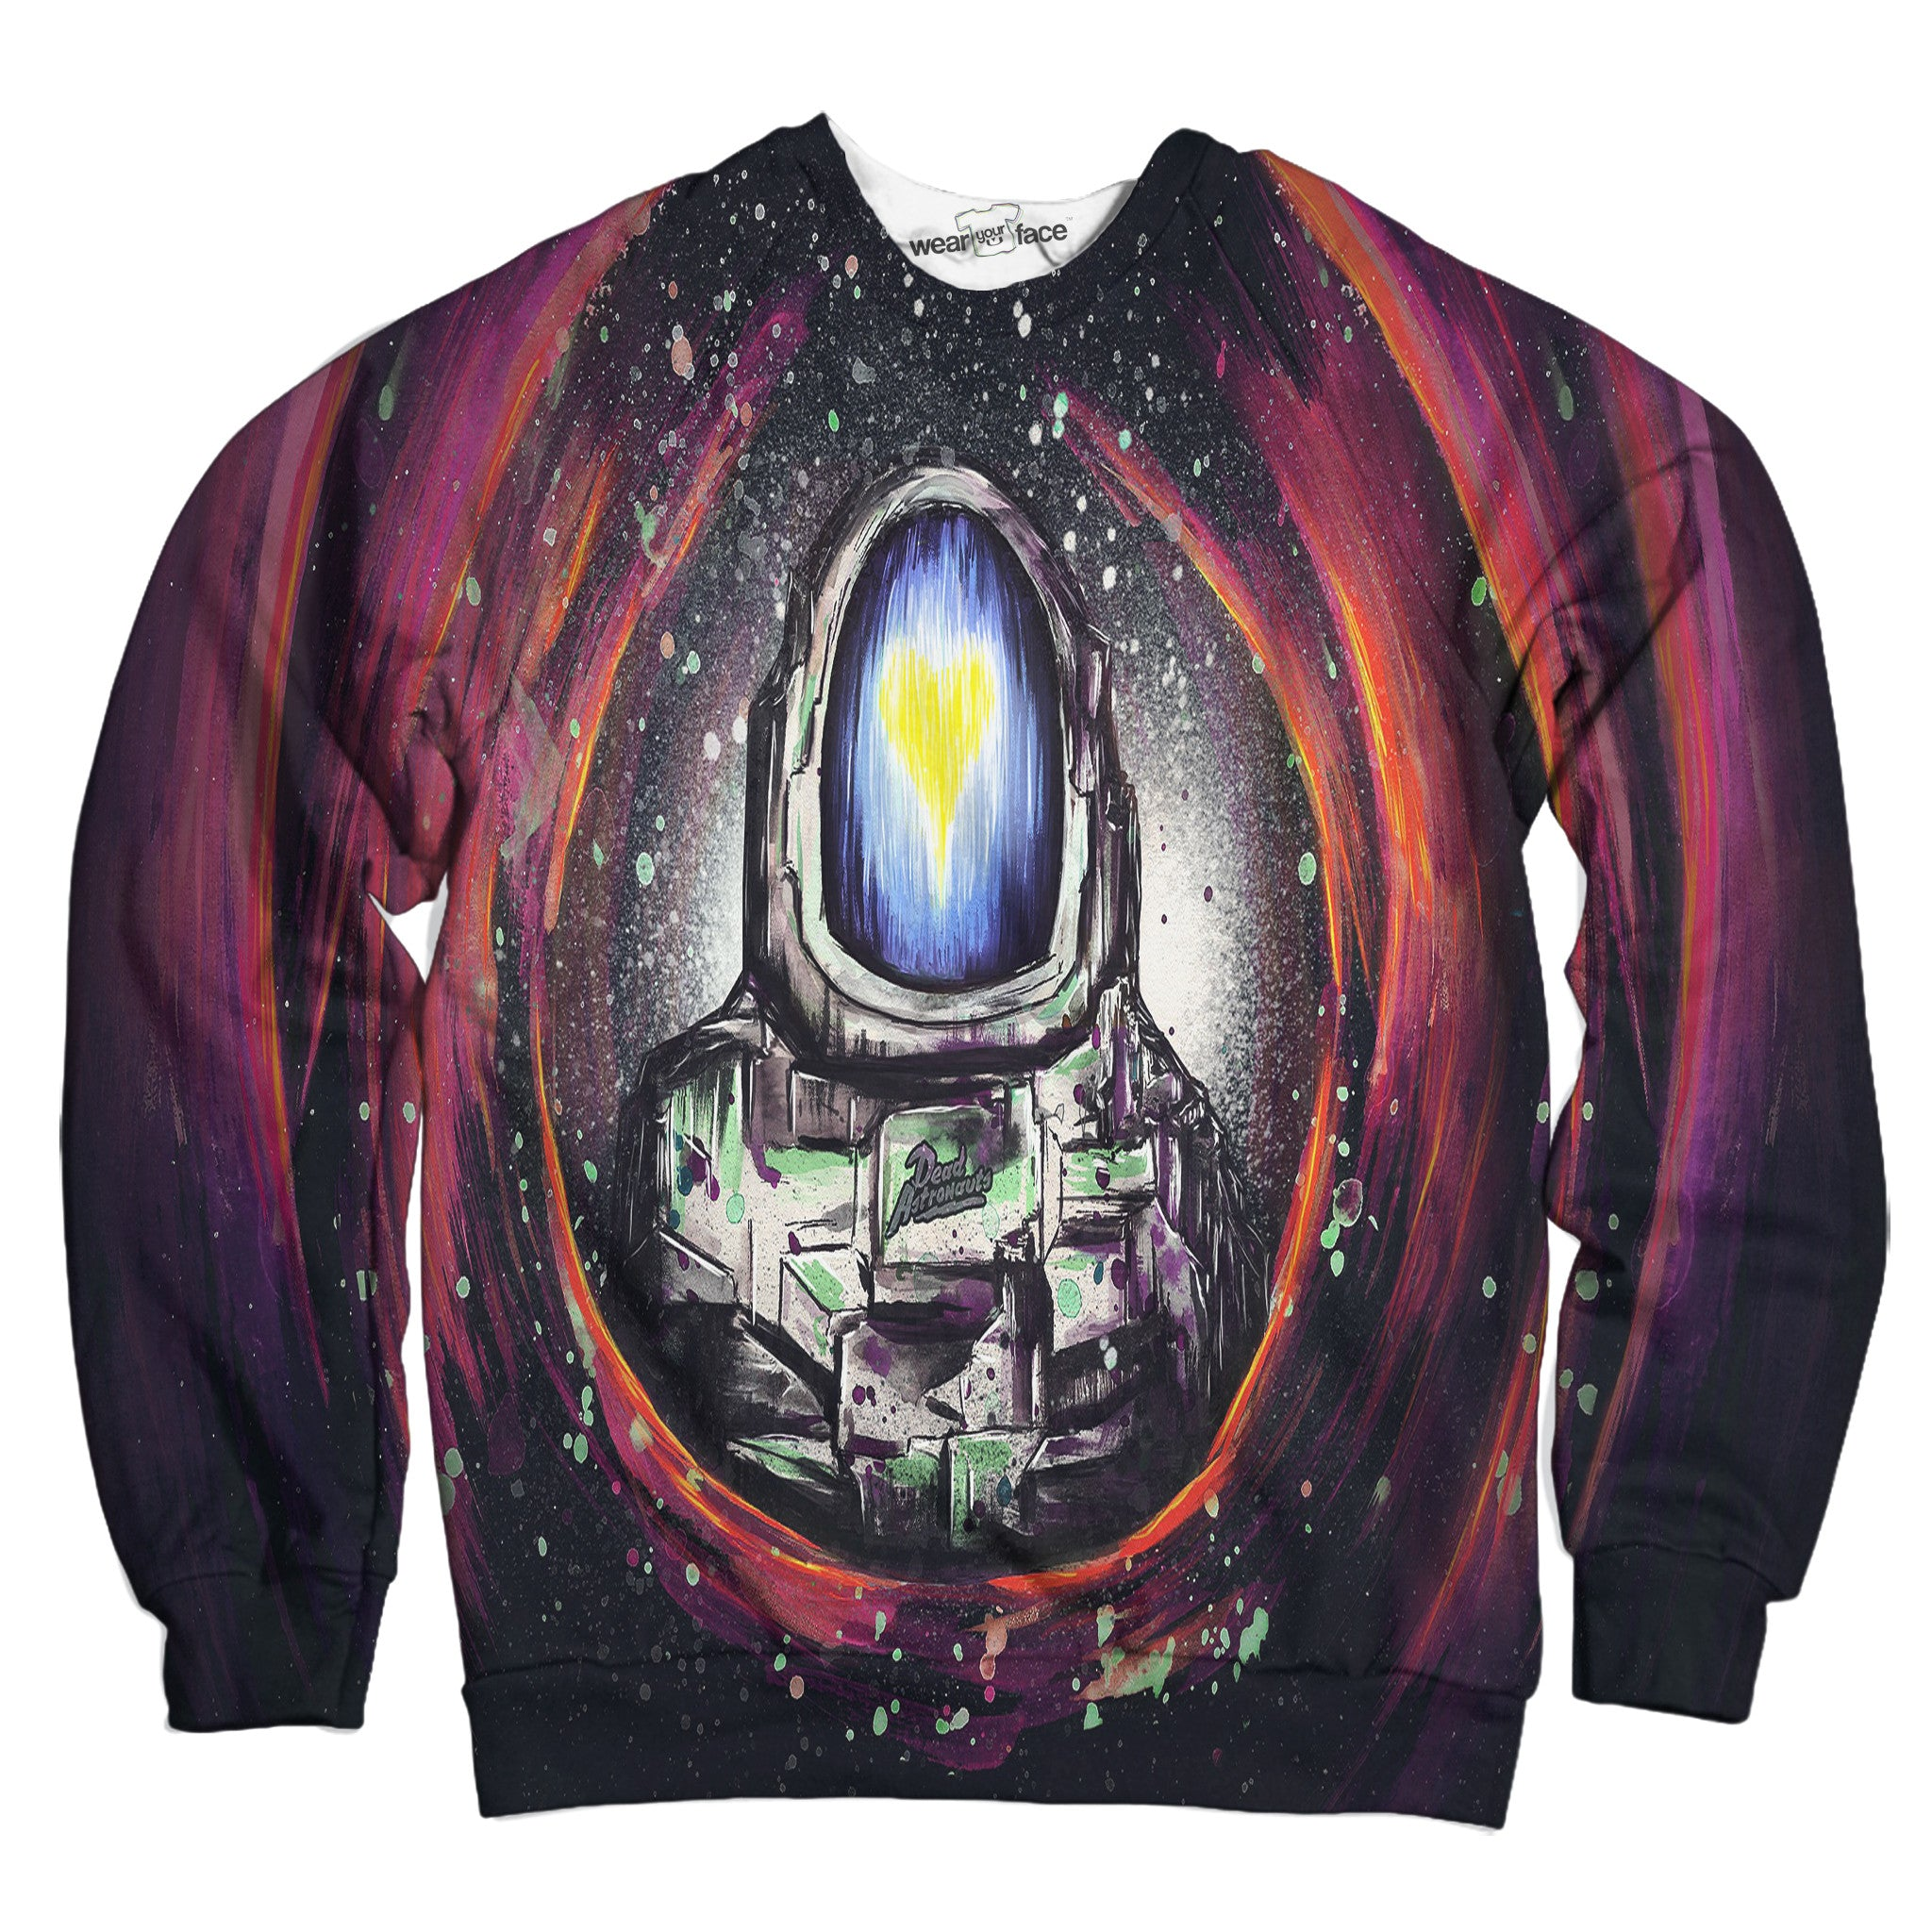 The Final Apollo Sweatshirt